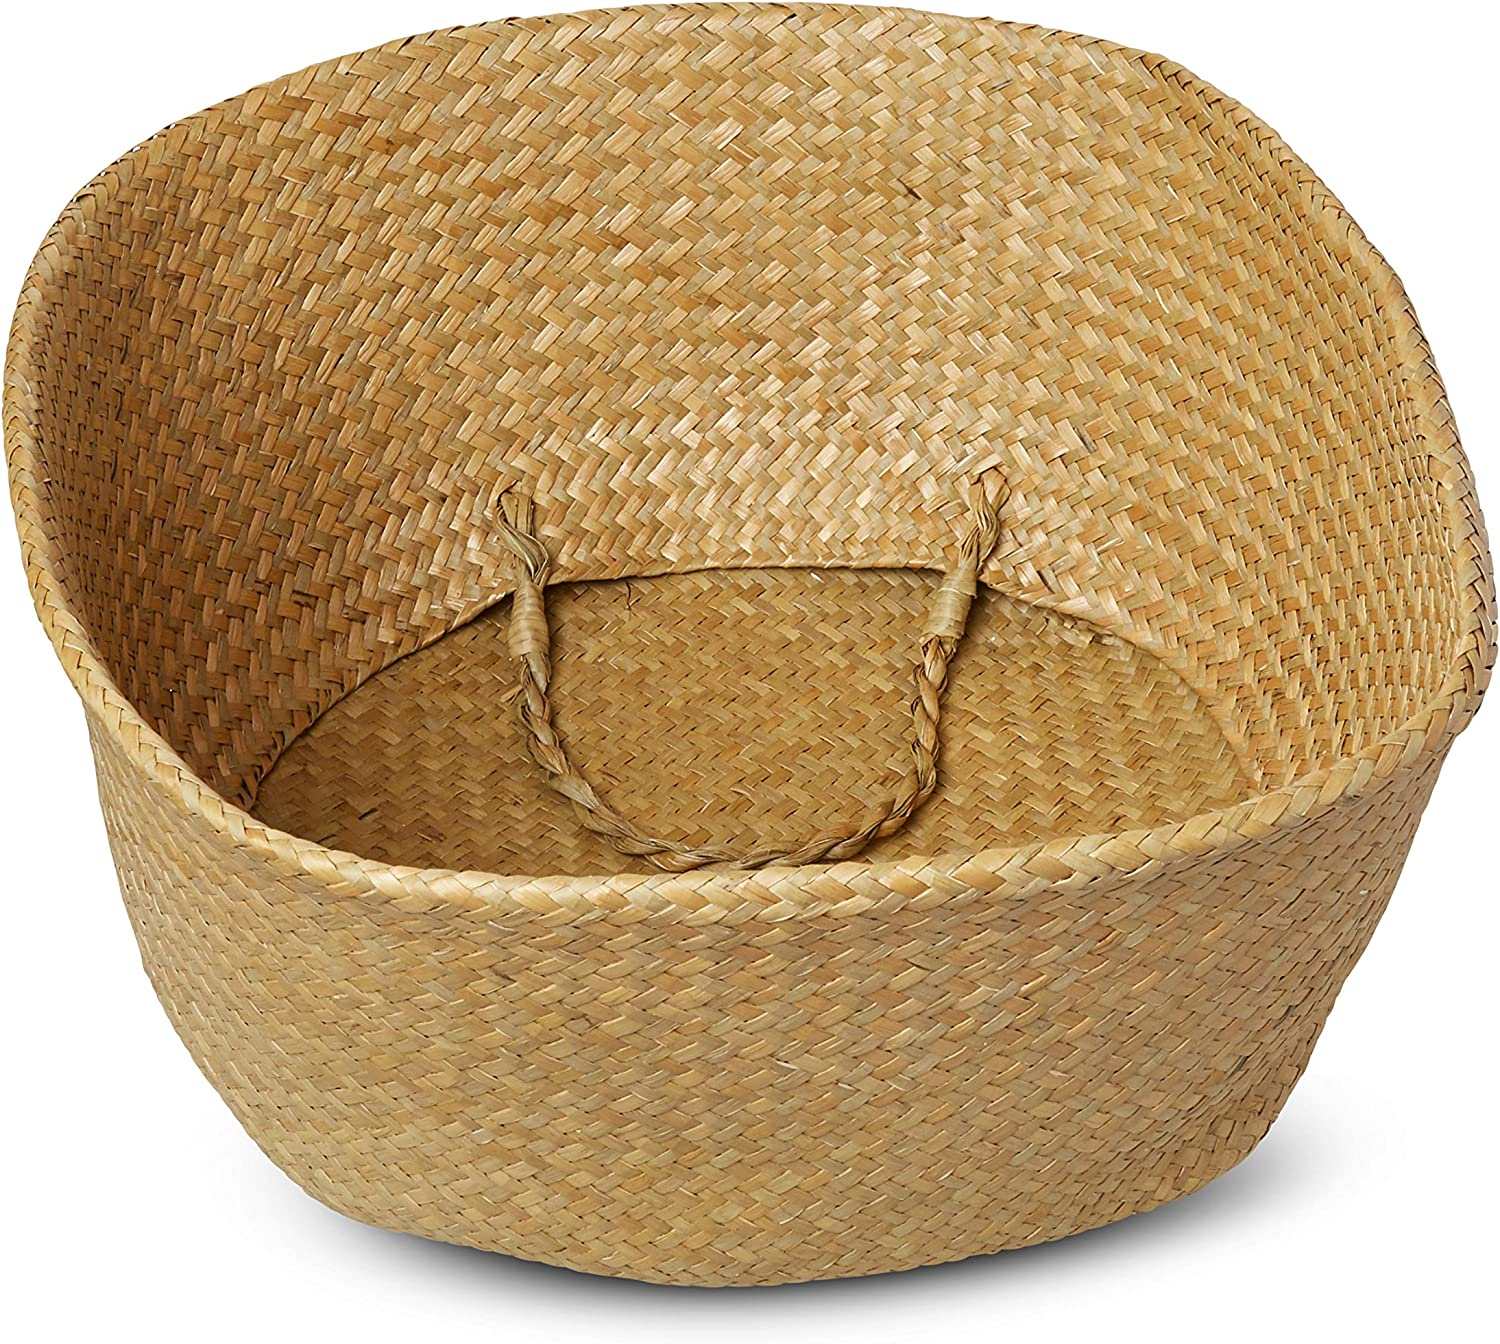 Organic Seagrass Basket - Home/Kitchen/Storage/Laundry/Organizer/Beach/Decor/Baskets - Hand Woven Plant basket - Toy Cover - Beach Bag - Toy Storage - Laundry Basket - Picnic Tote - with Strong Handle